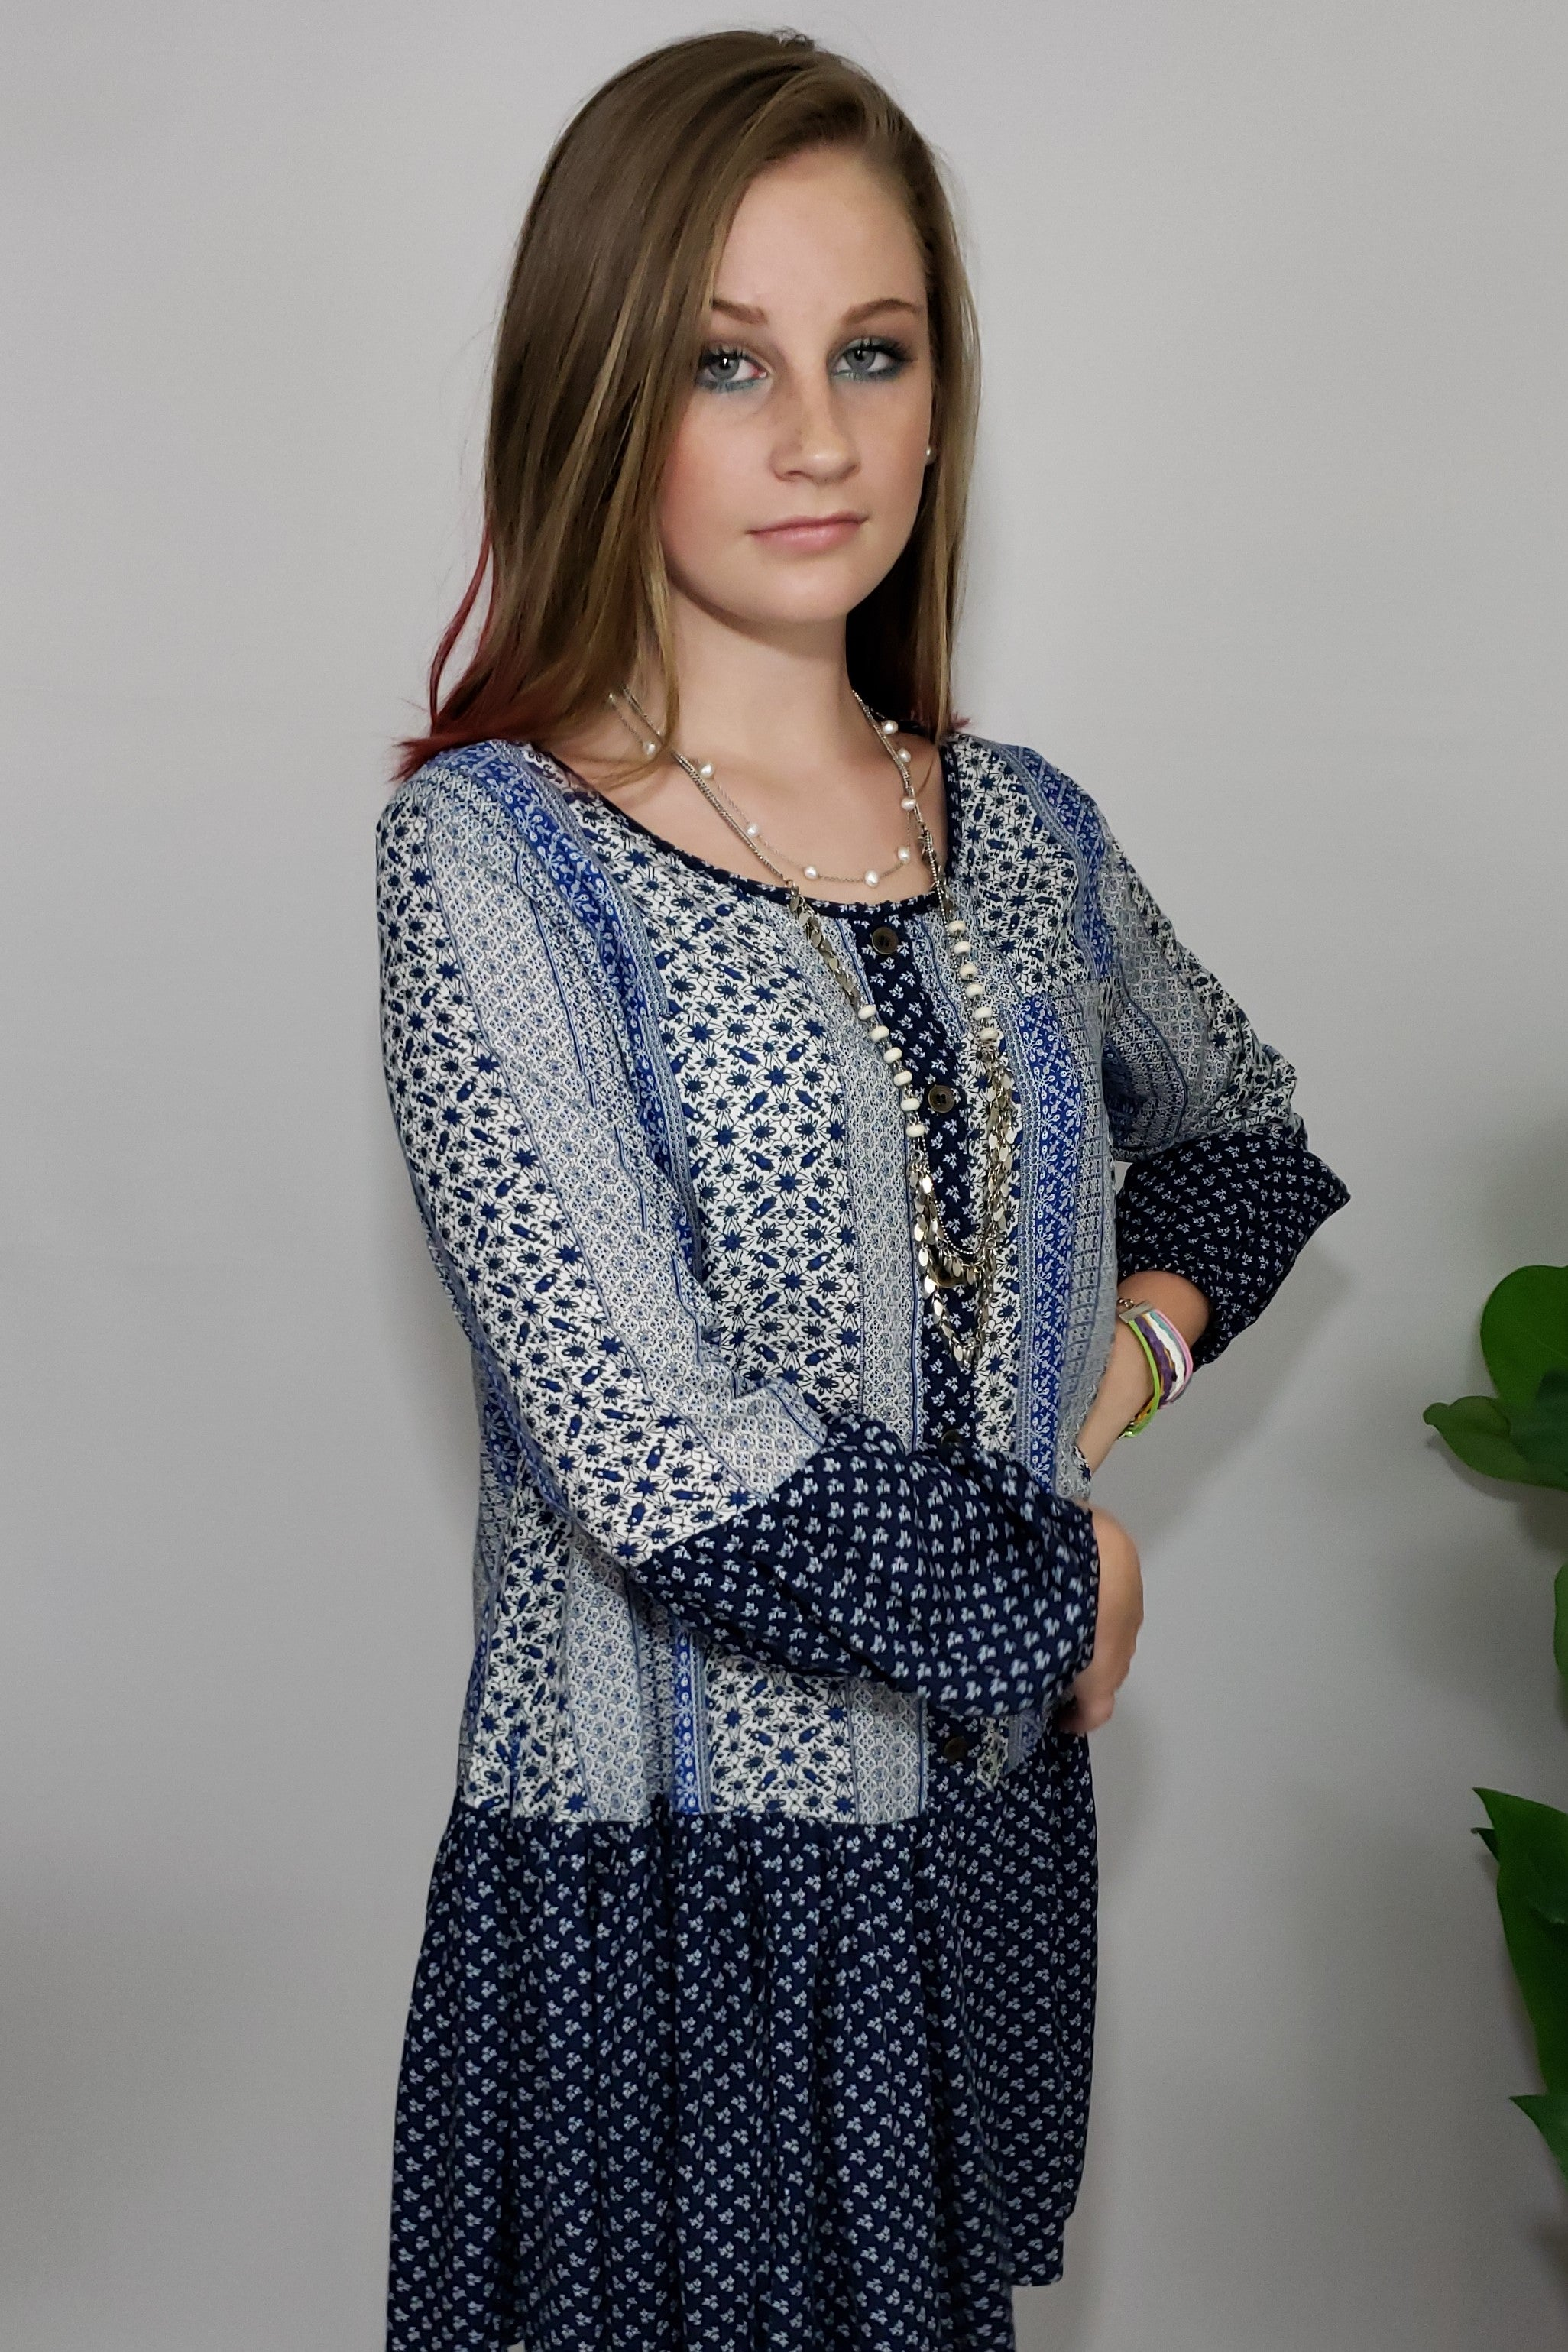 Mally Shades of Blooz Ruffle Button Down Contrast Tunic Dress - Houzz of DVA Boutique